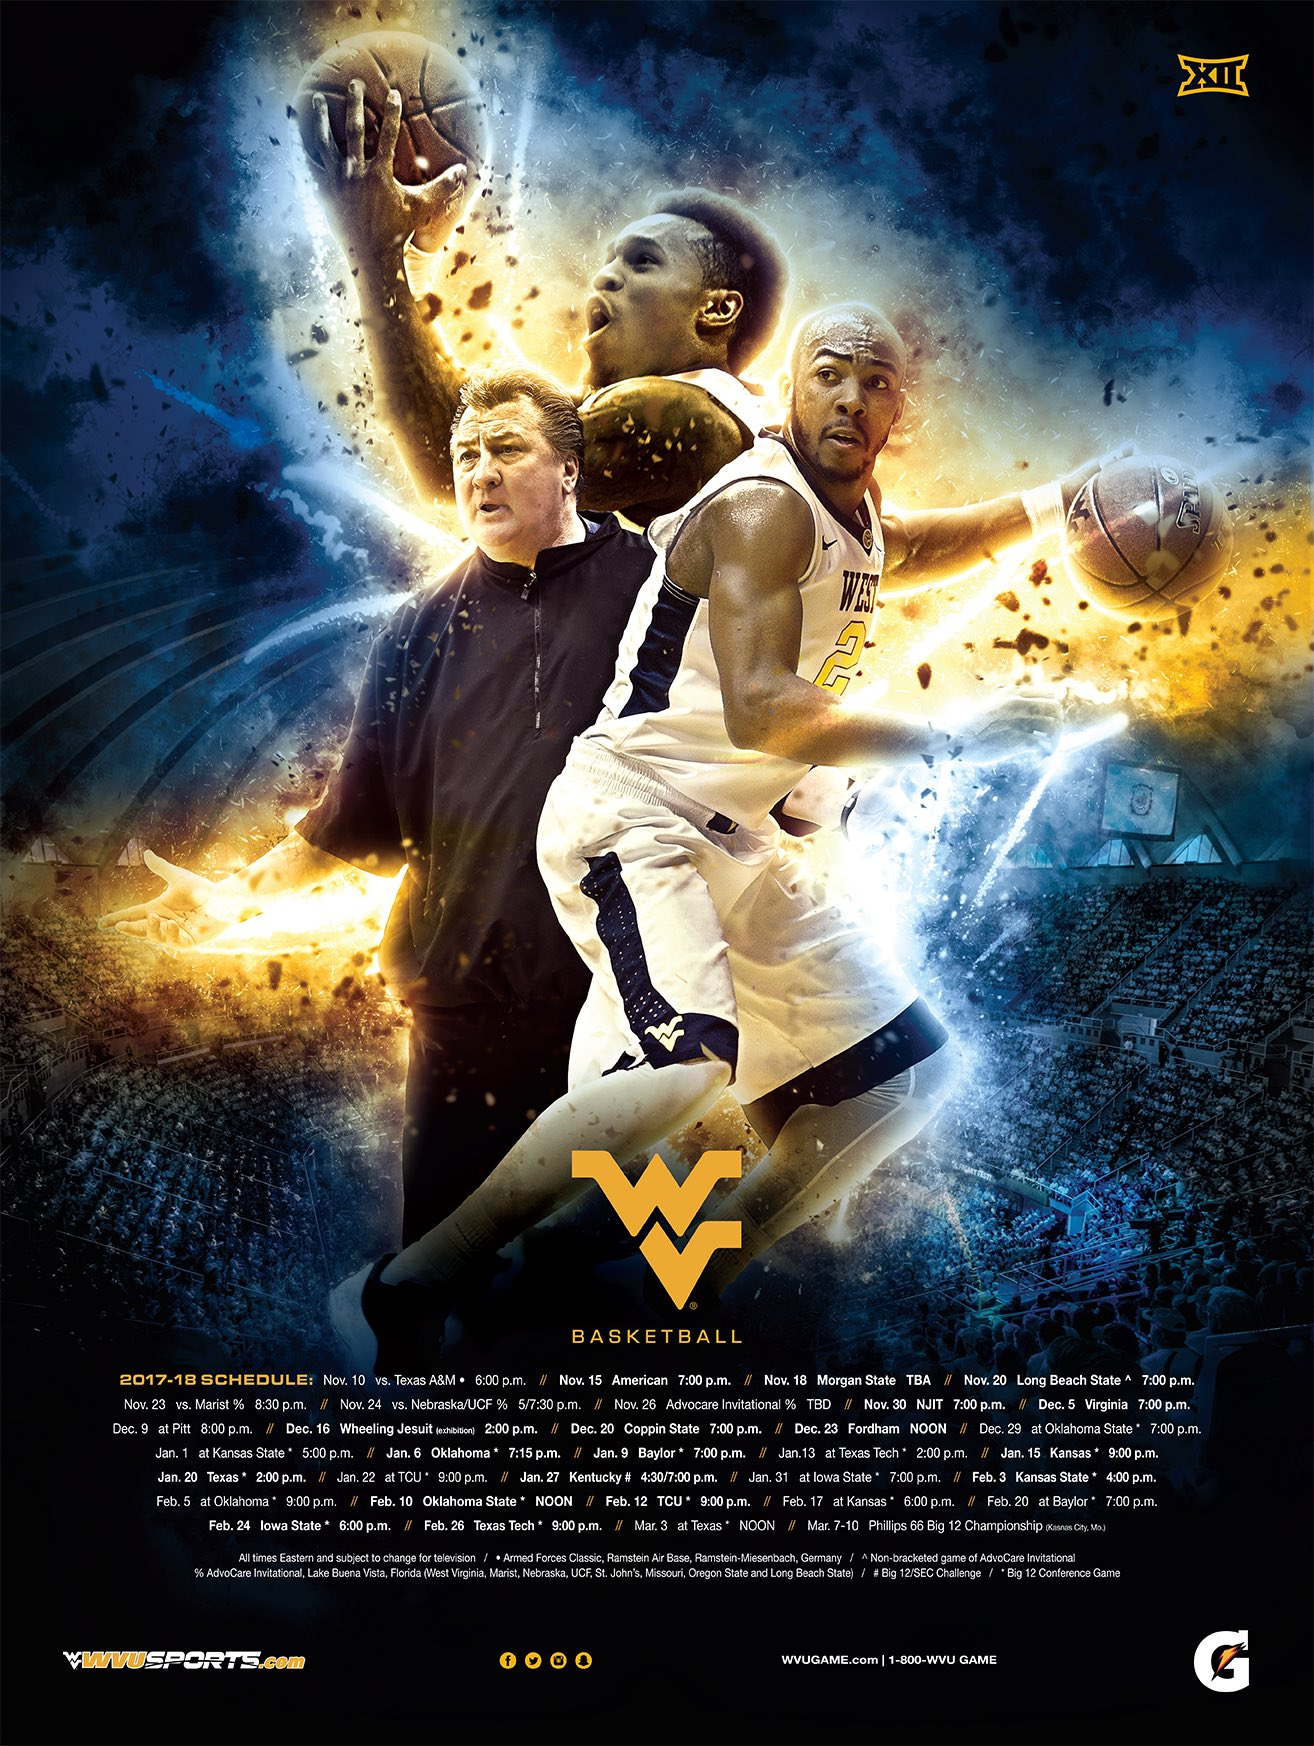 Wvu Basketball On Twitter Quot Here It Is The 2017 18